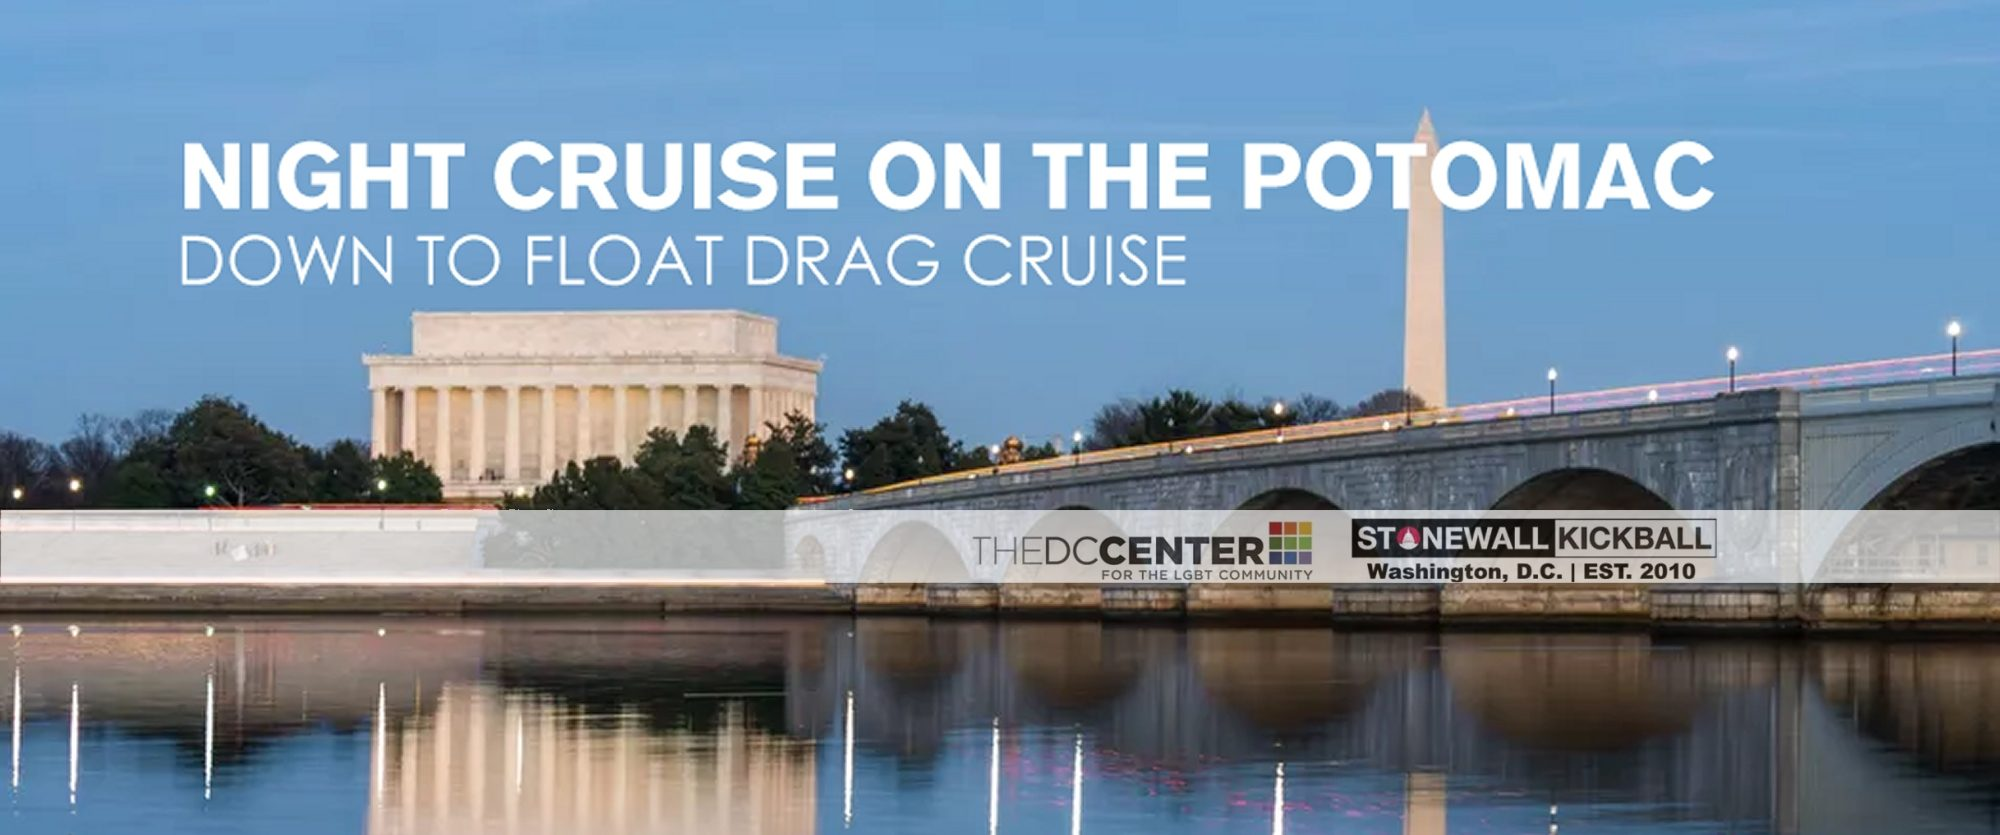 DTF Drag Cruise